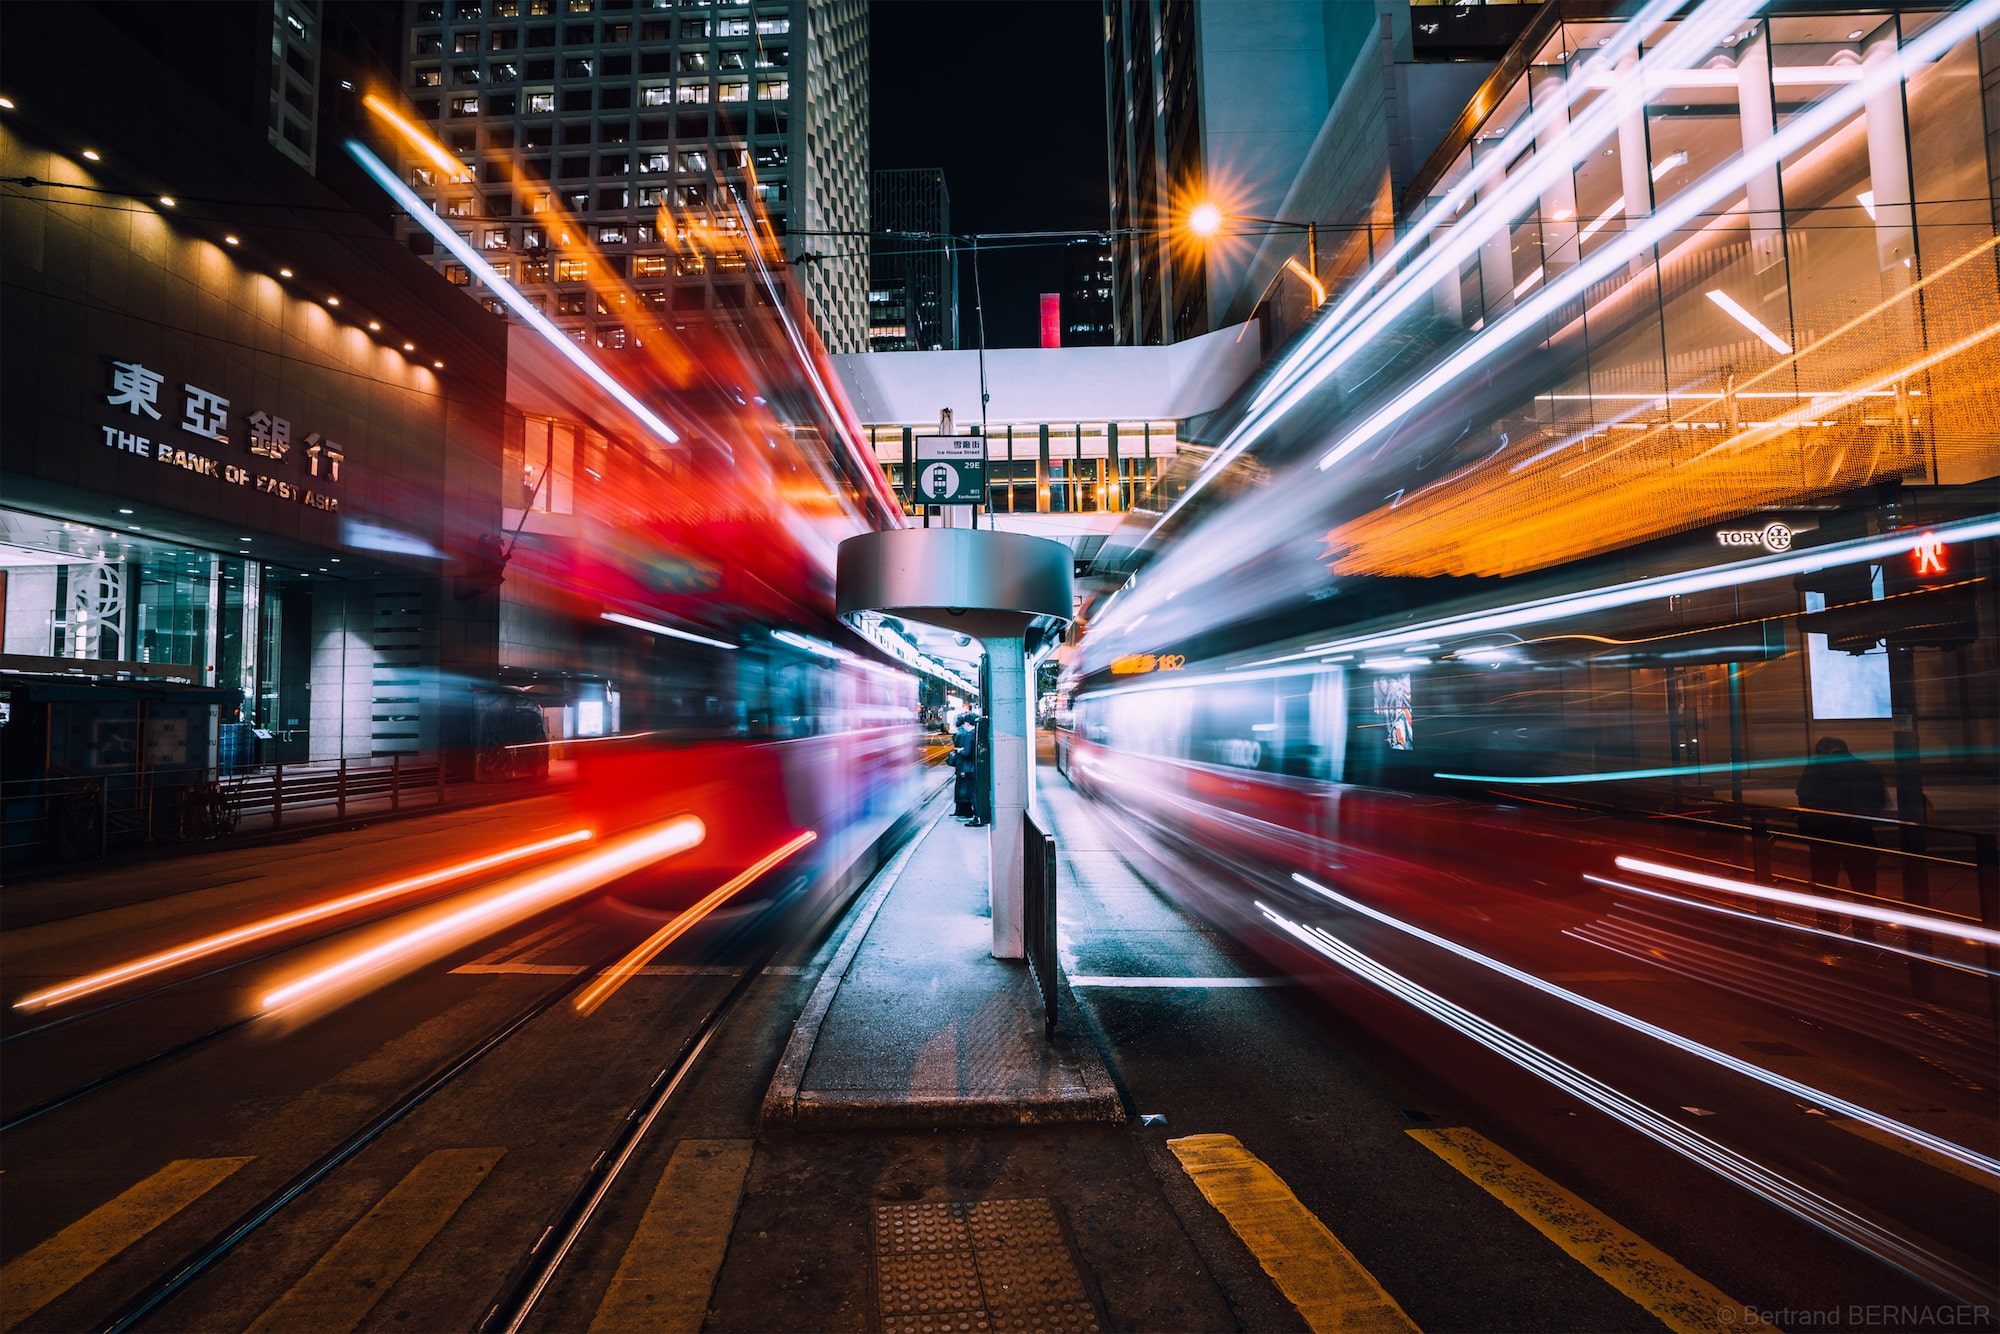 bertrand bernager sony alpha 7RM3 long exposure tokyo street scene with 2 buses passing each other